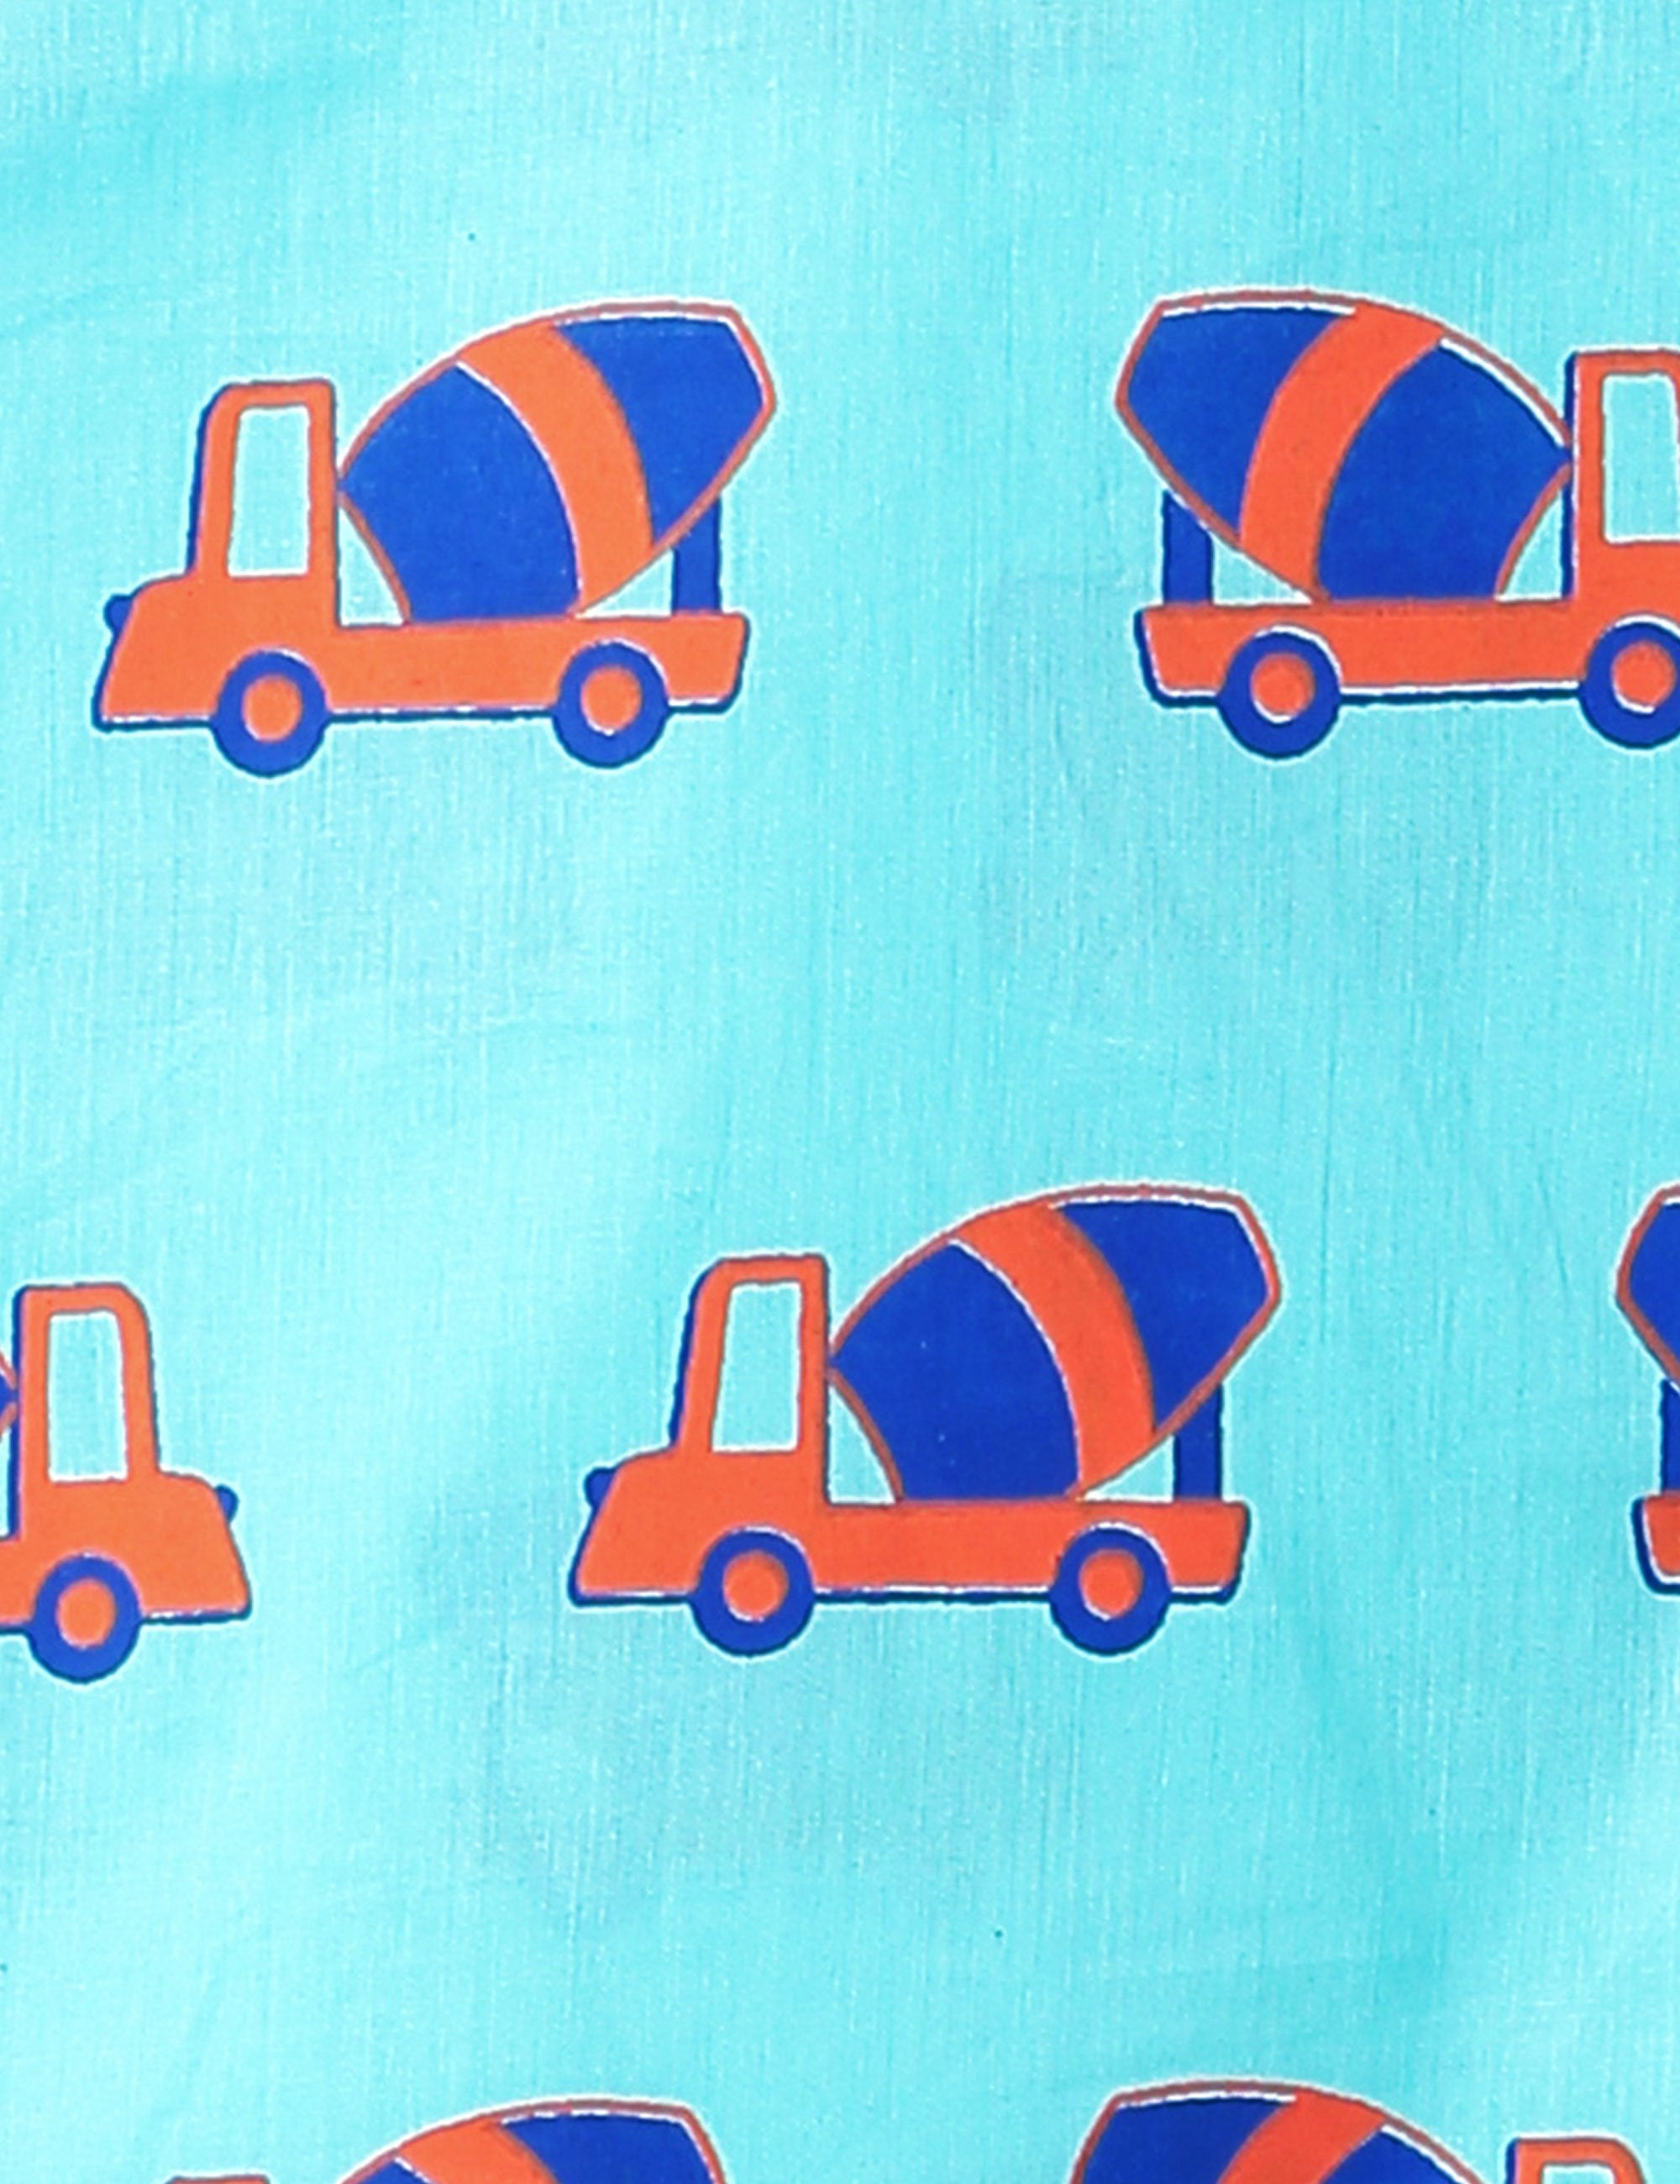 Truck Printed Kurta in Blue & Orange Colour for Boys & Girls